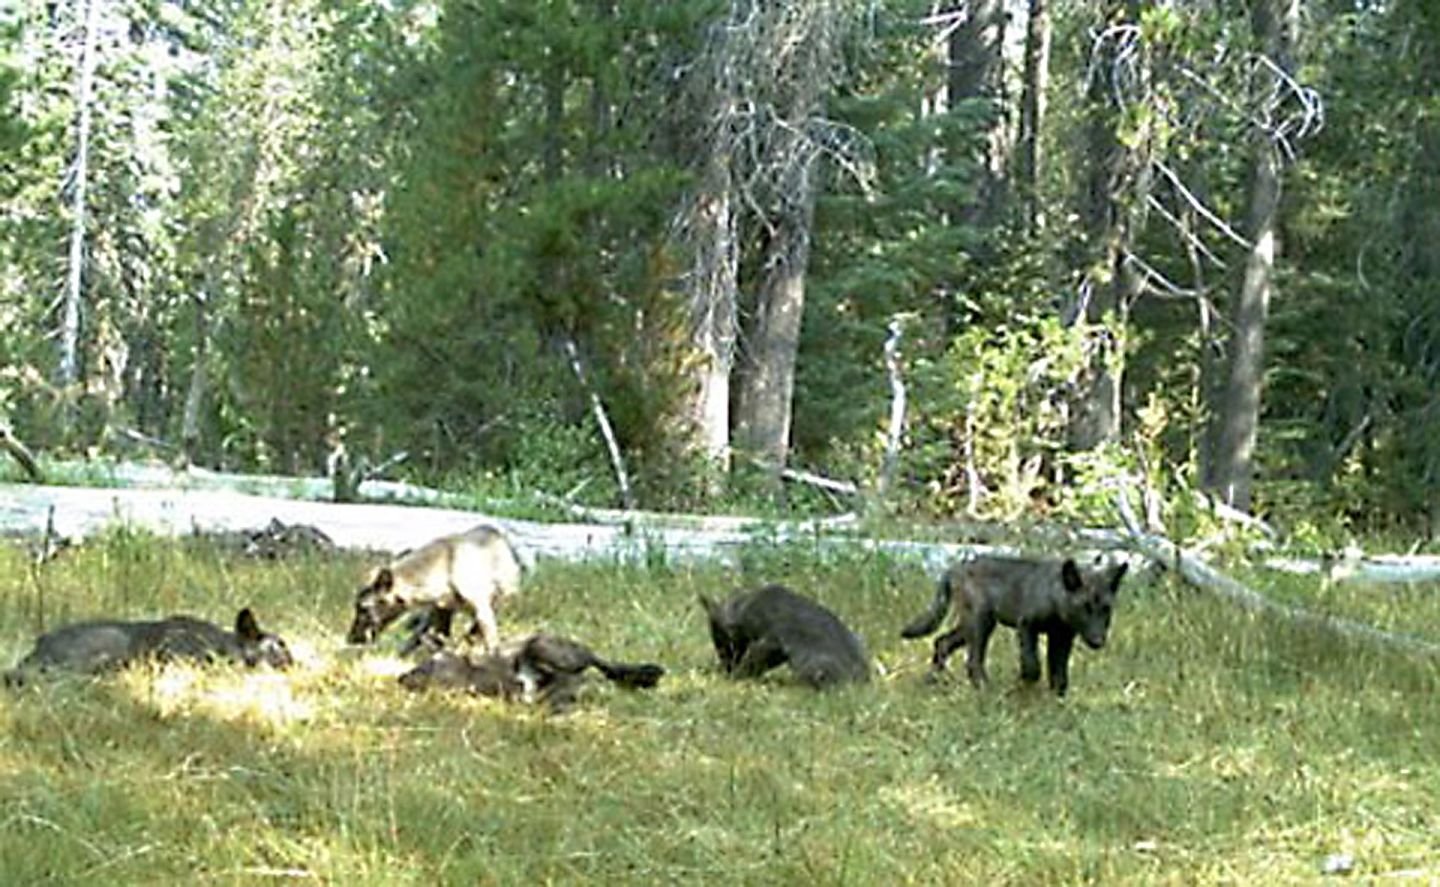 Gray Wolves May Lose Protections Once There Are 50 in California